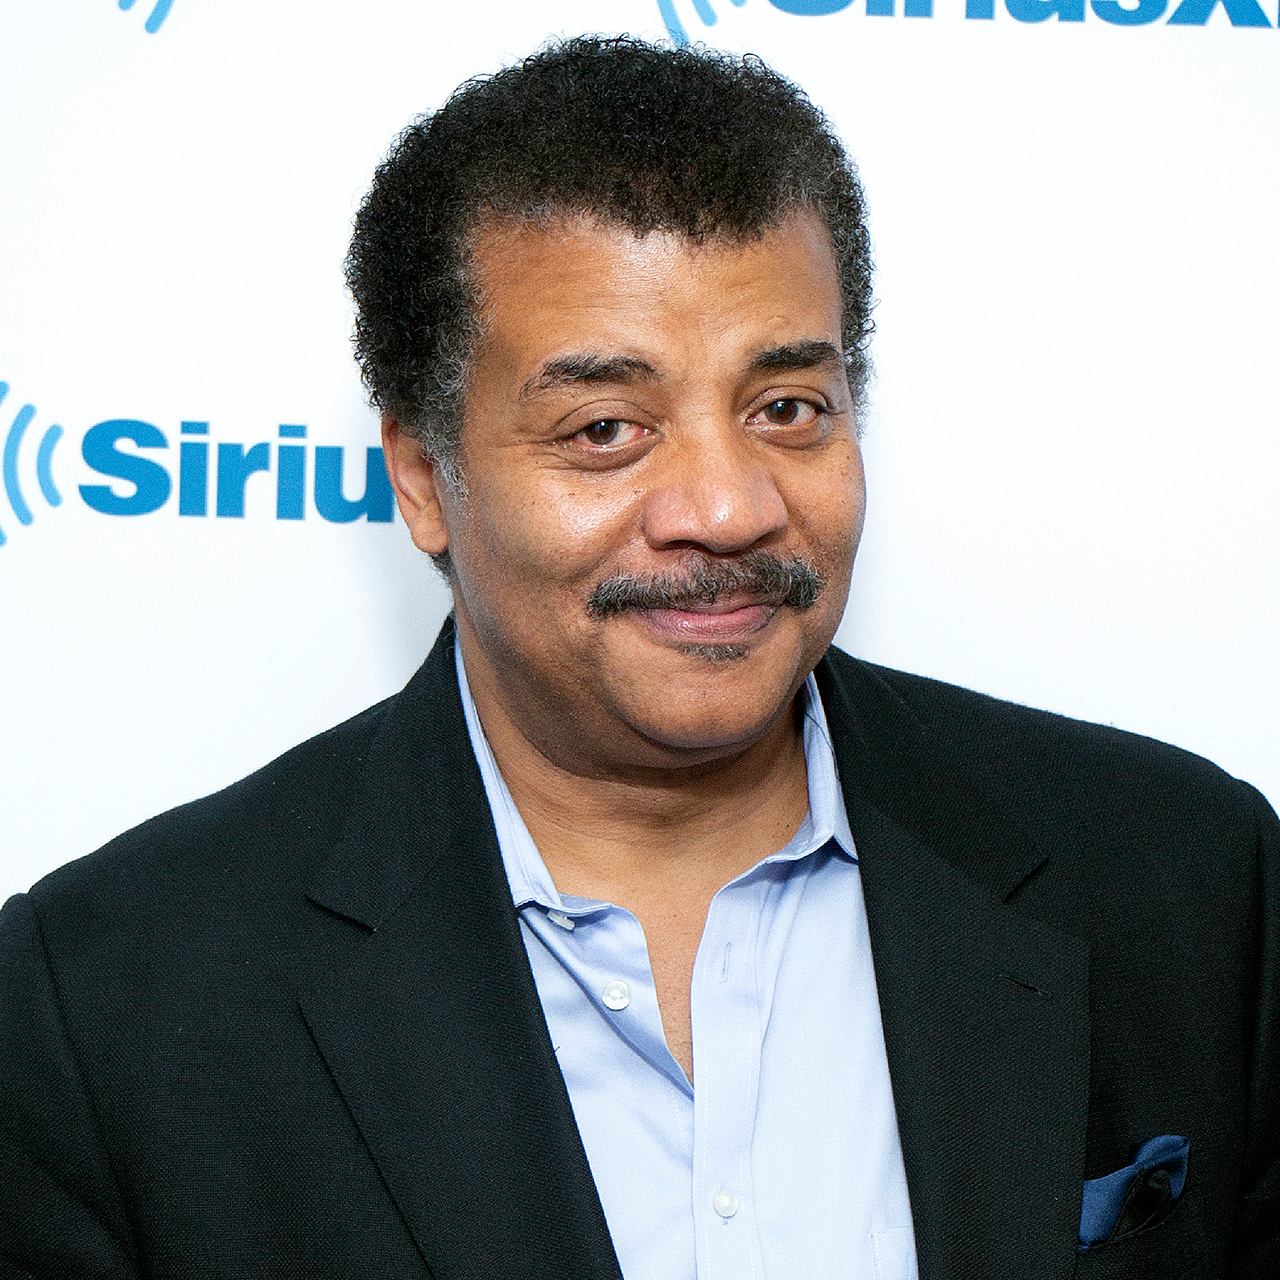 """Neil-deGrasse-Tyson - The Cosmos: A Spacetime Odyssey host likened Singleton's life to that of a star. """"Stars in the universe that burn the brightest, live shorter lives than others,"""" he tweeted ."""